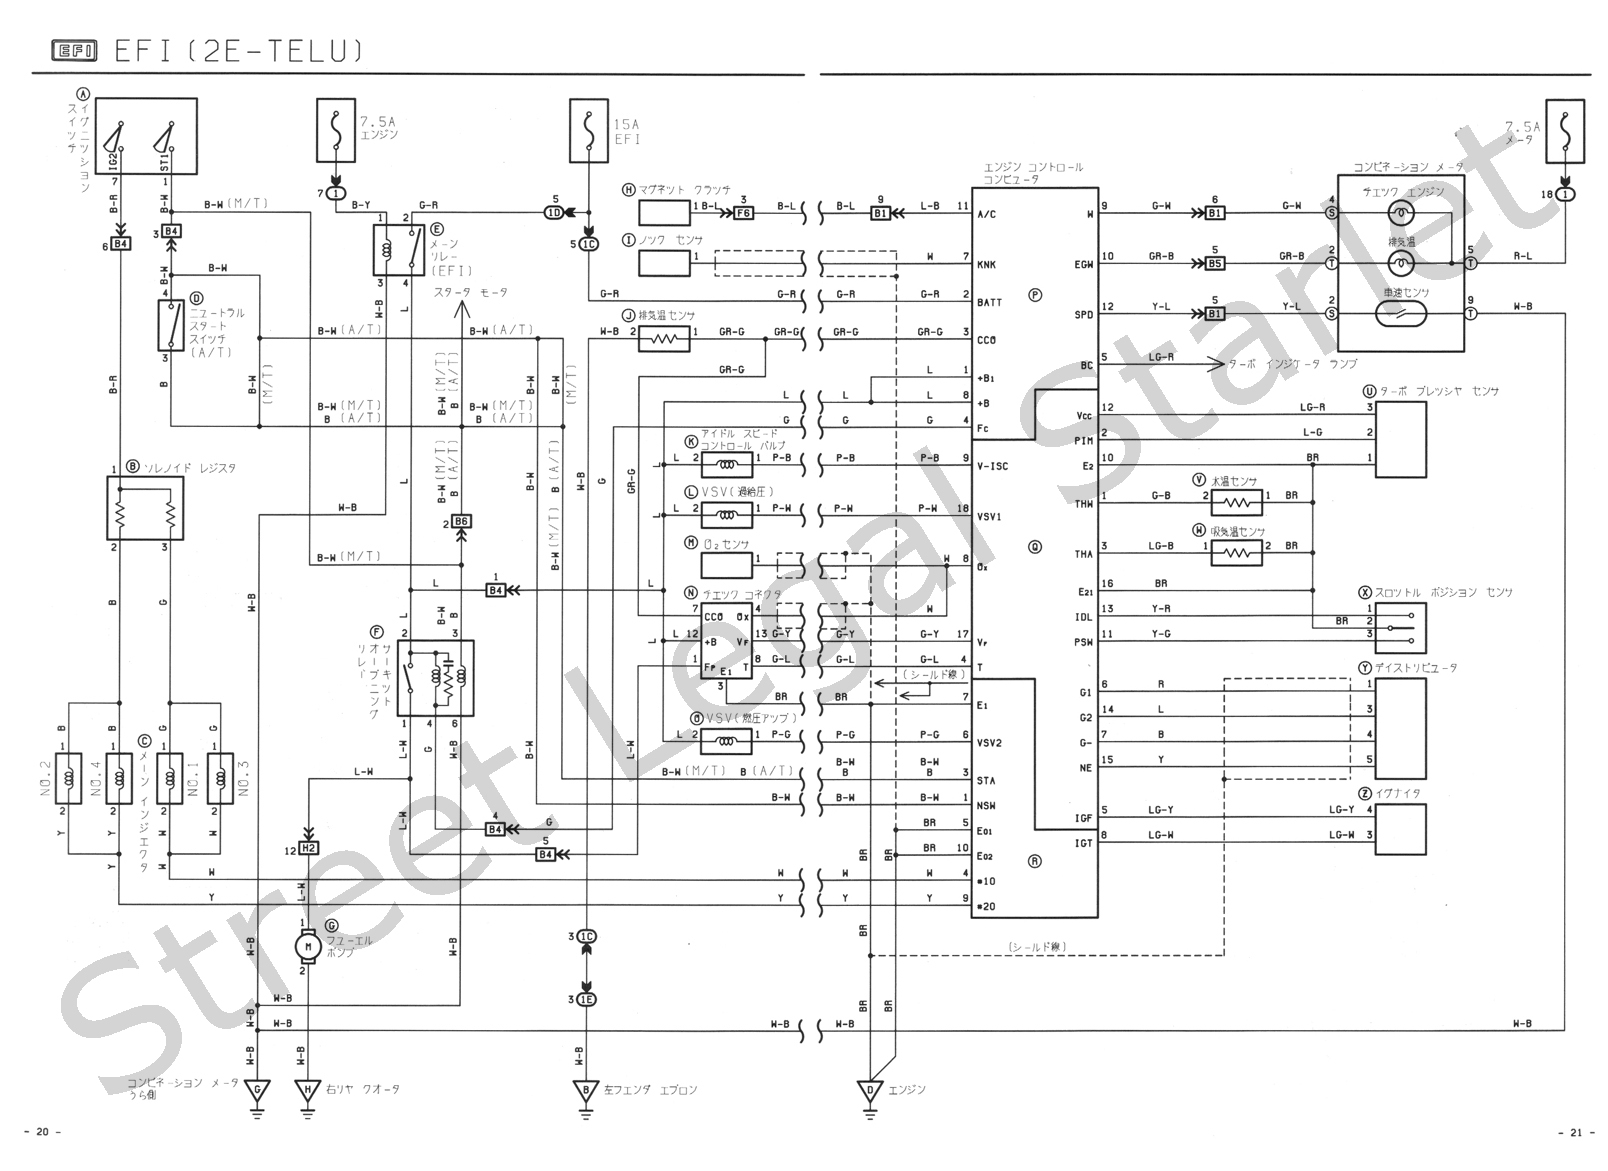 SLS EP71 Wiring diagram 2e telu?resize\\\\\\\=665%2C484 microtech lt8s wiring diagram snatch block diagrams \u2022 wiring microtech lt10s wiring diagram at virtualis.co